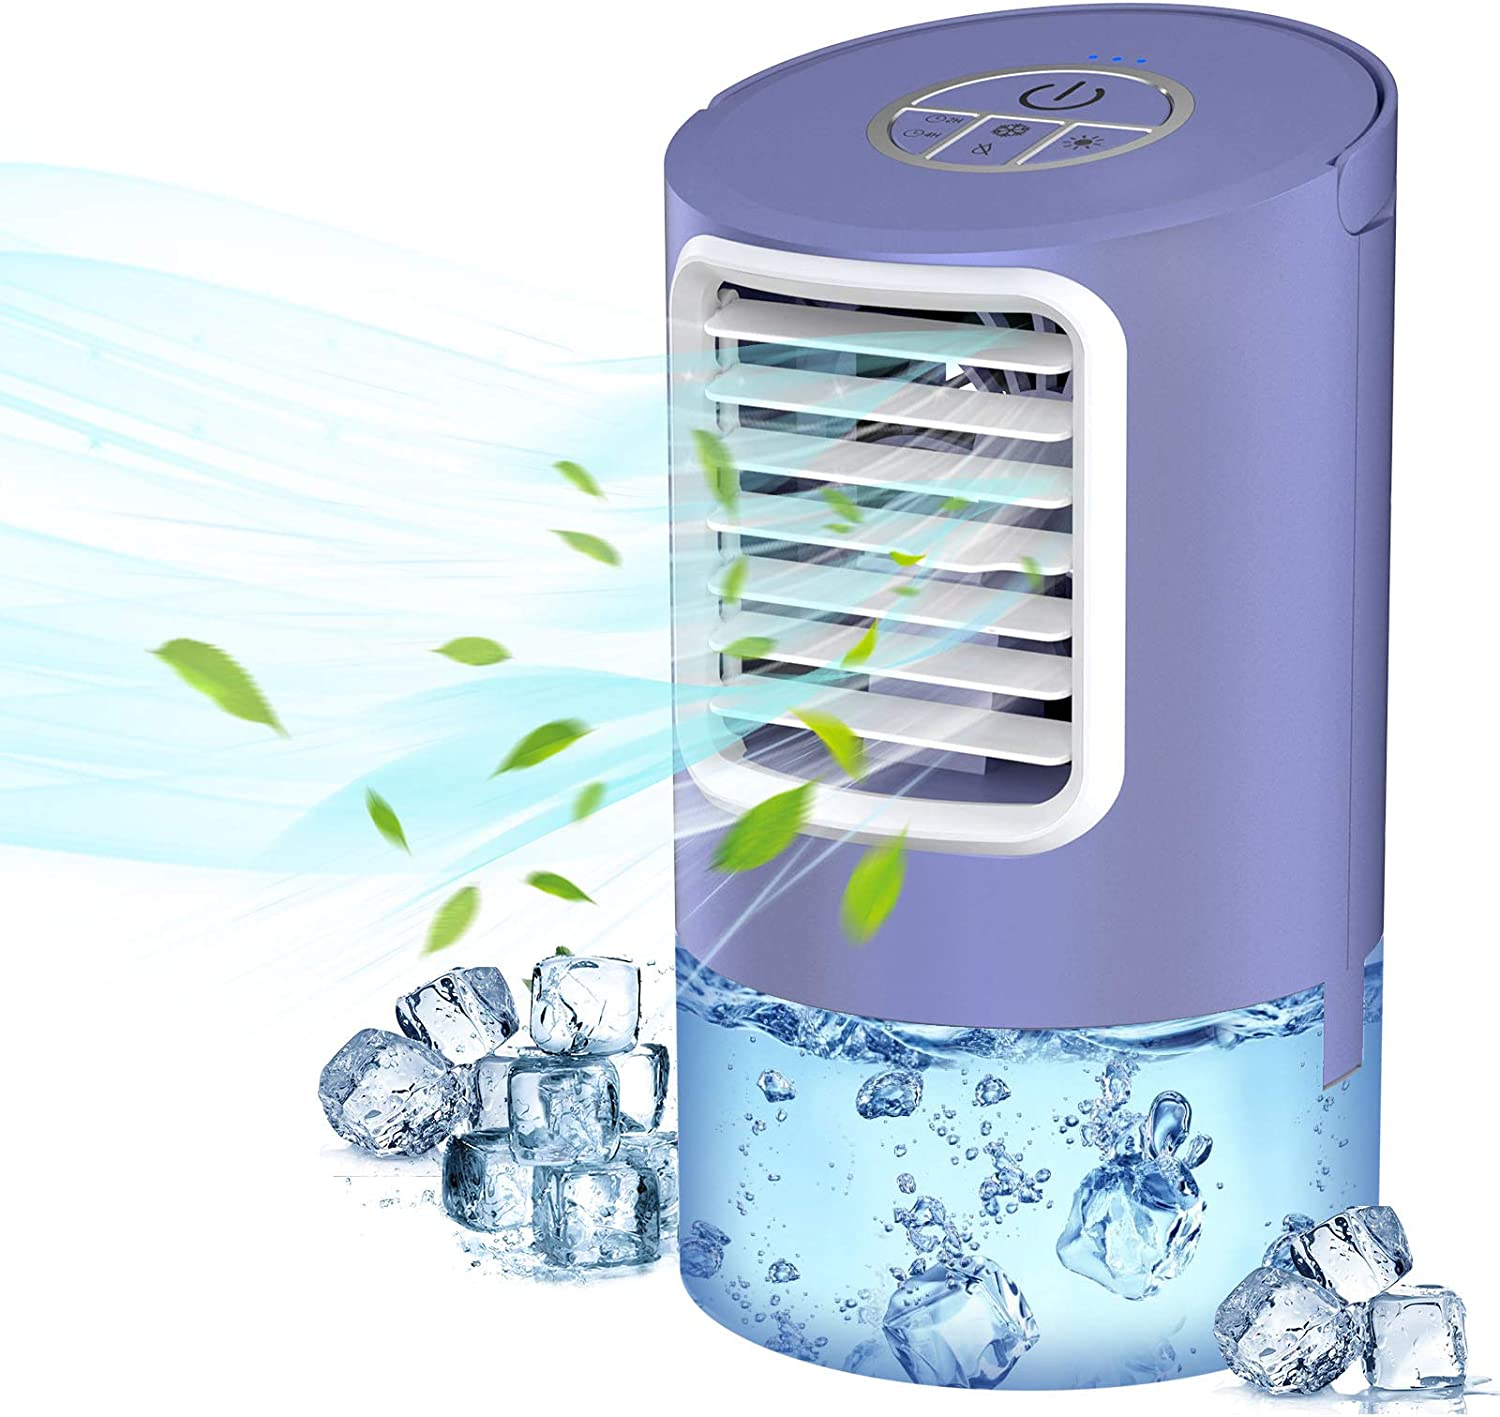 Portable Air Conditioner Fan, Evaporative Air Cooler, 3-in-1 Portable Air Cooler, 3 Speeds & 2/4H Timer Cooling Fan Portable for Home, Office, Bedroom, Travel(Purple)